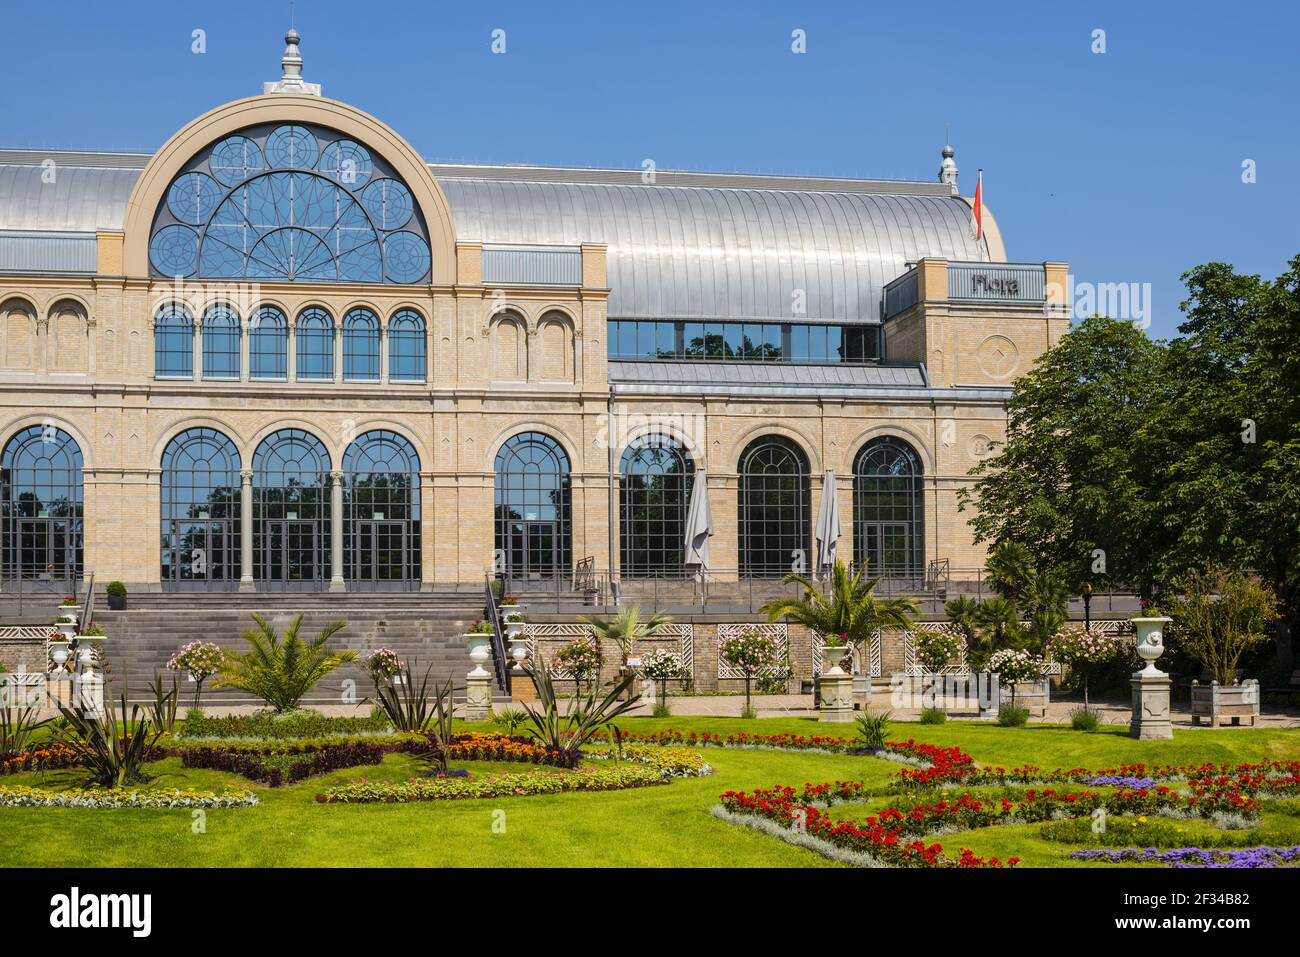 geography / travel, Germany, North Rhine-Westphalia, botanical garden, festival hall of the flora, Cologne, Freedom-Of-Panorama Stock Photo